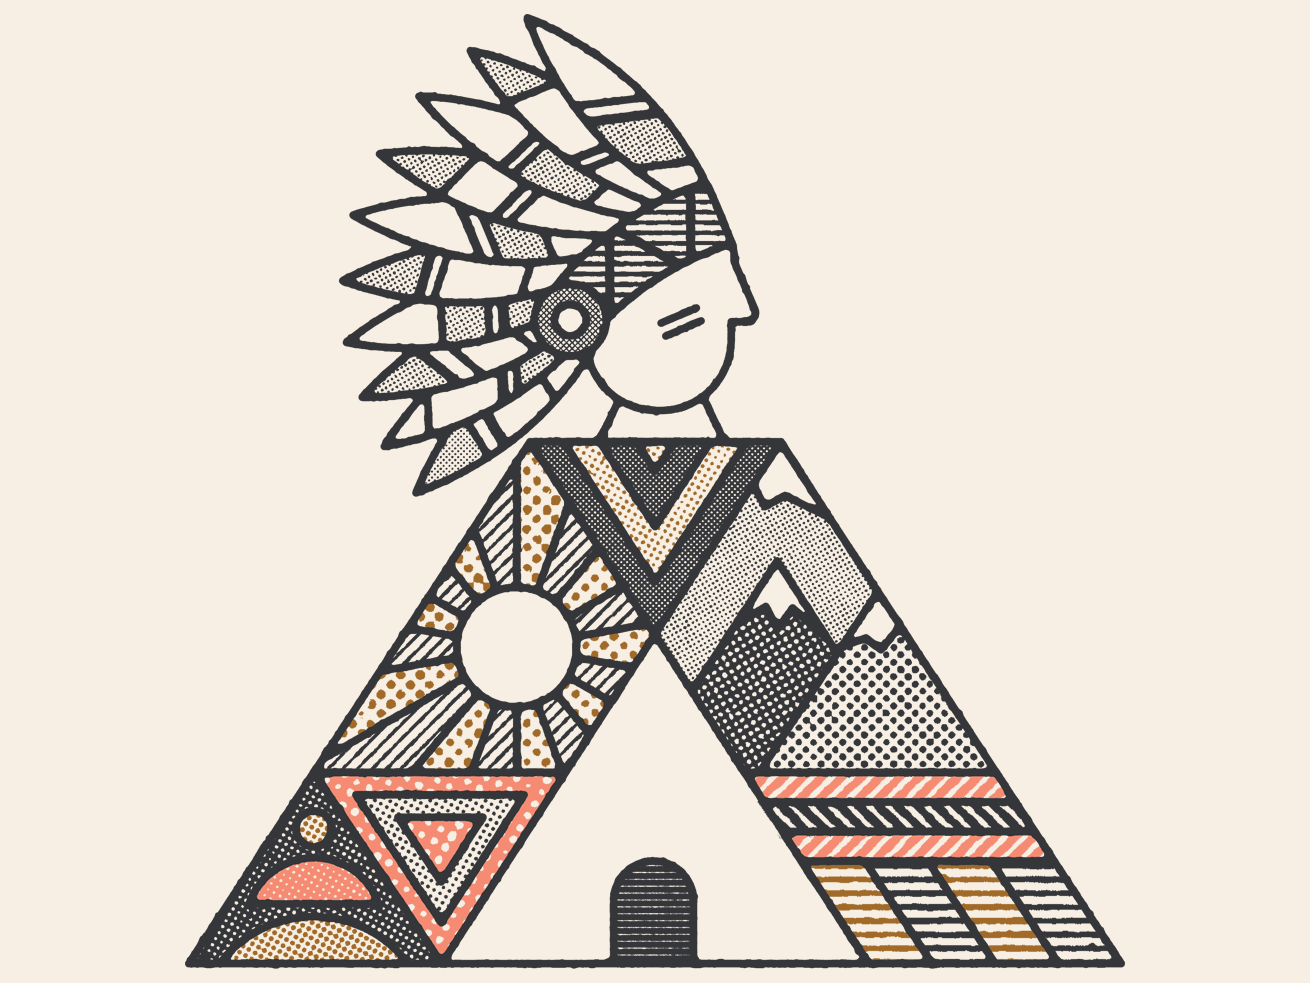 ⛰️ nature mexico mountains feathers lakota native native american geometric pattern lines distressed dots textures illustration guadalajara